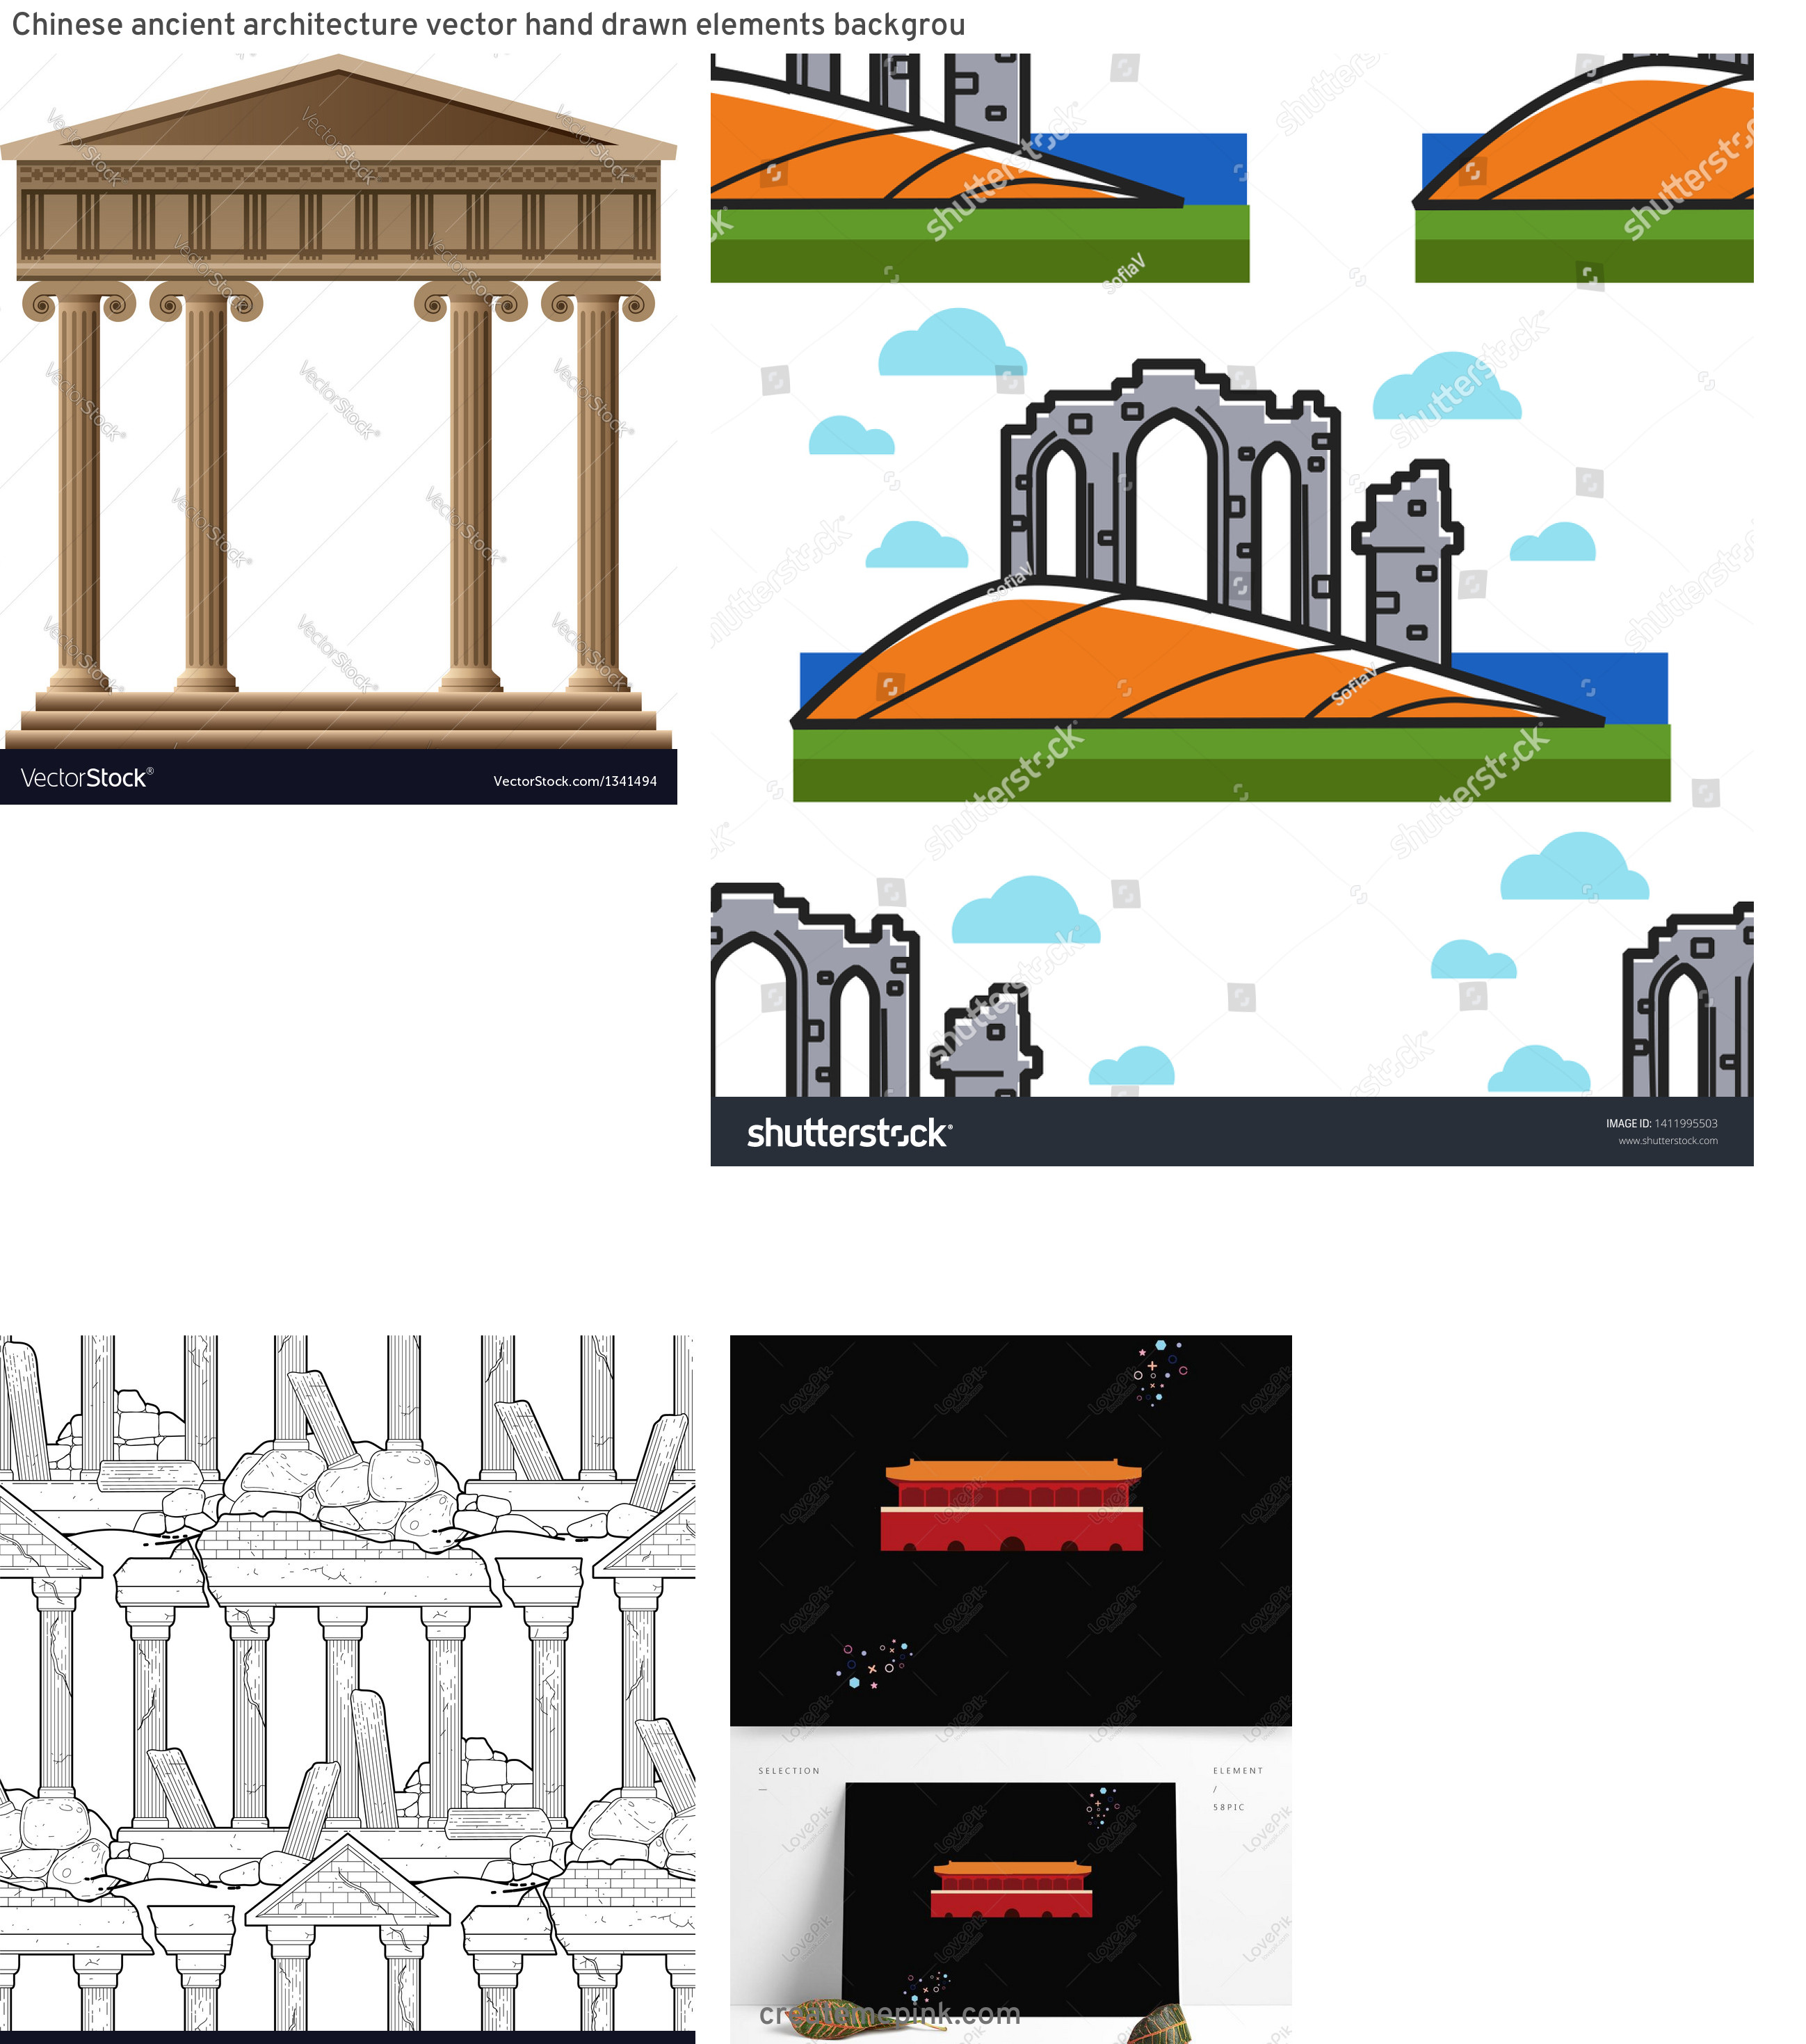 Ancient Architecture Vector: Chinese Ancient Architecture Vector Hand Drawn Elements Backgrou